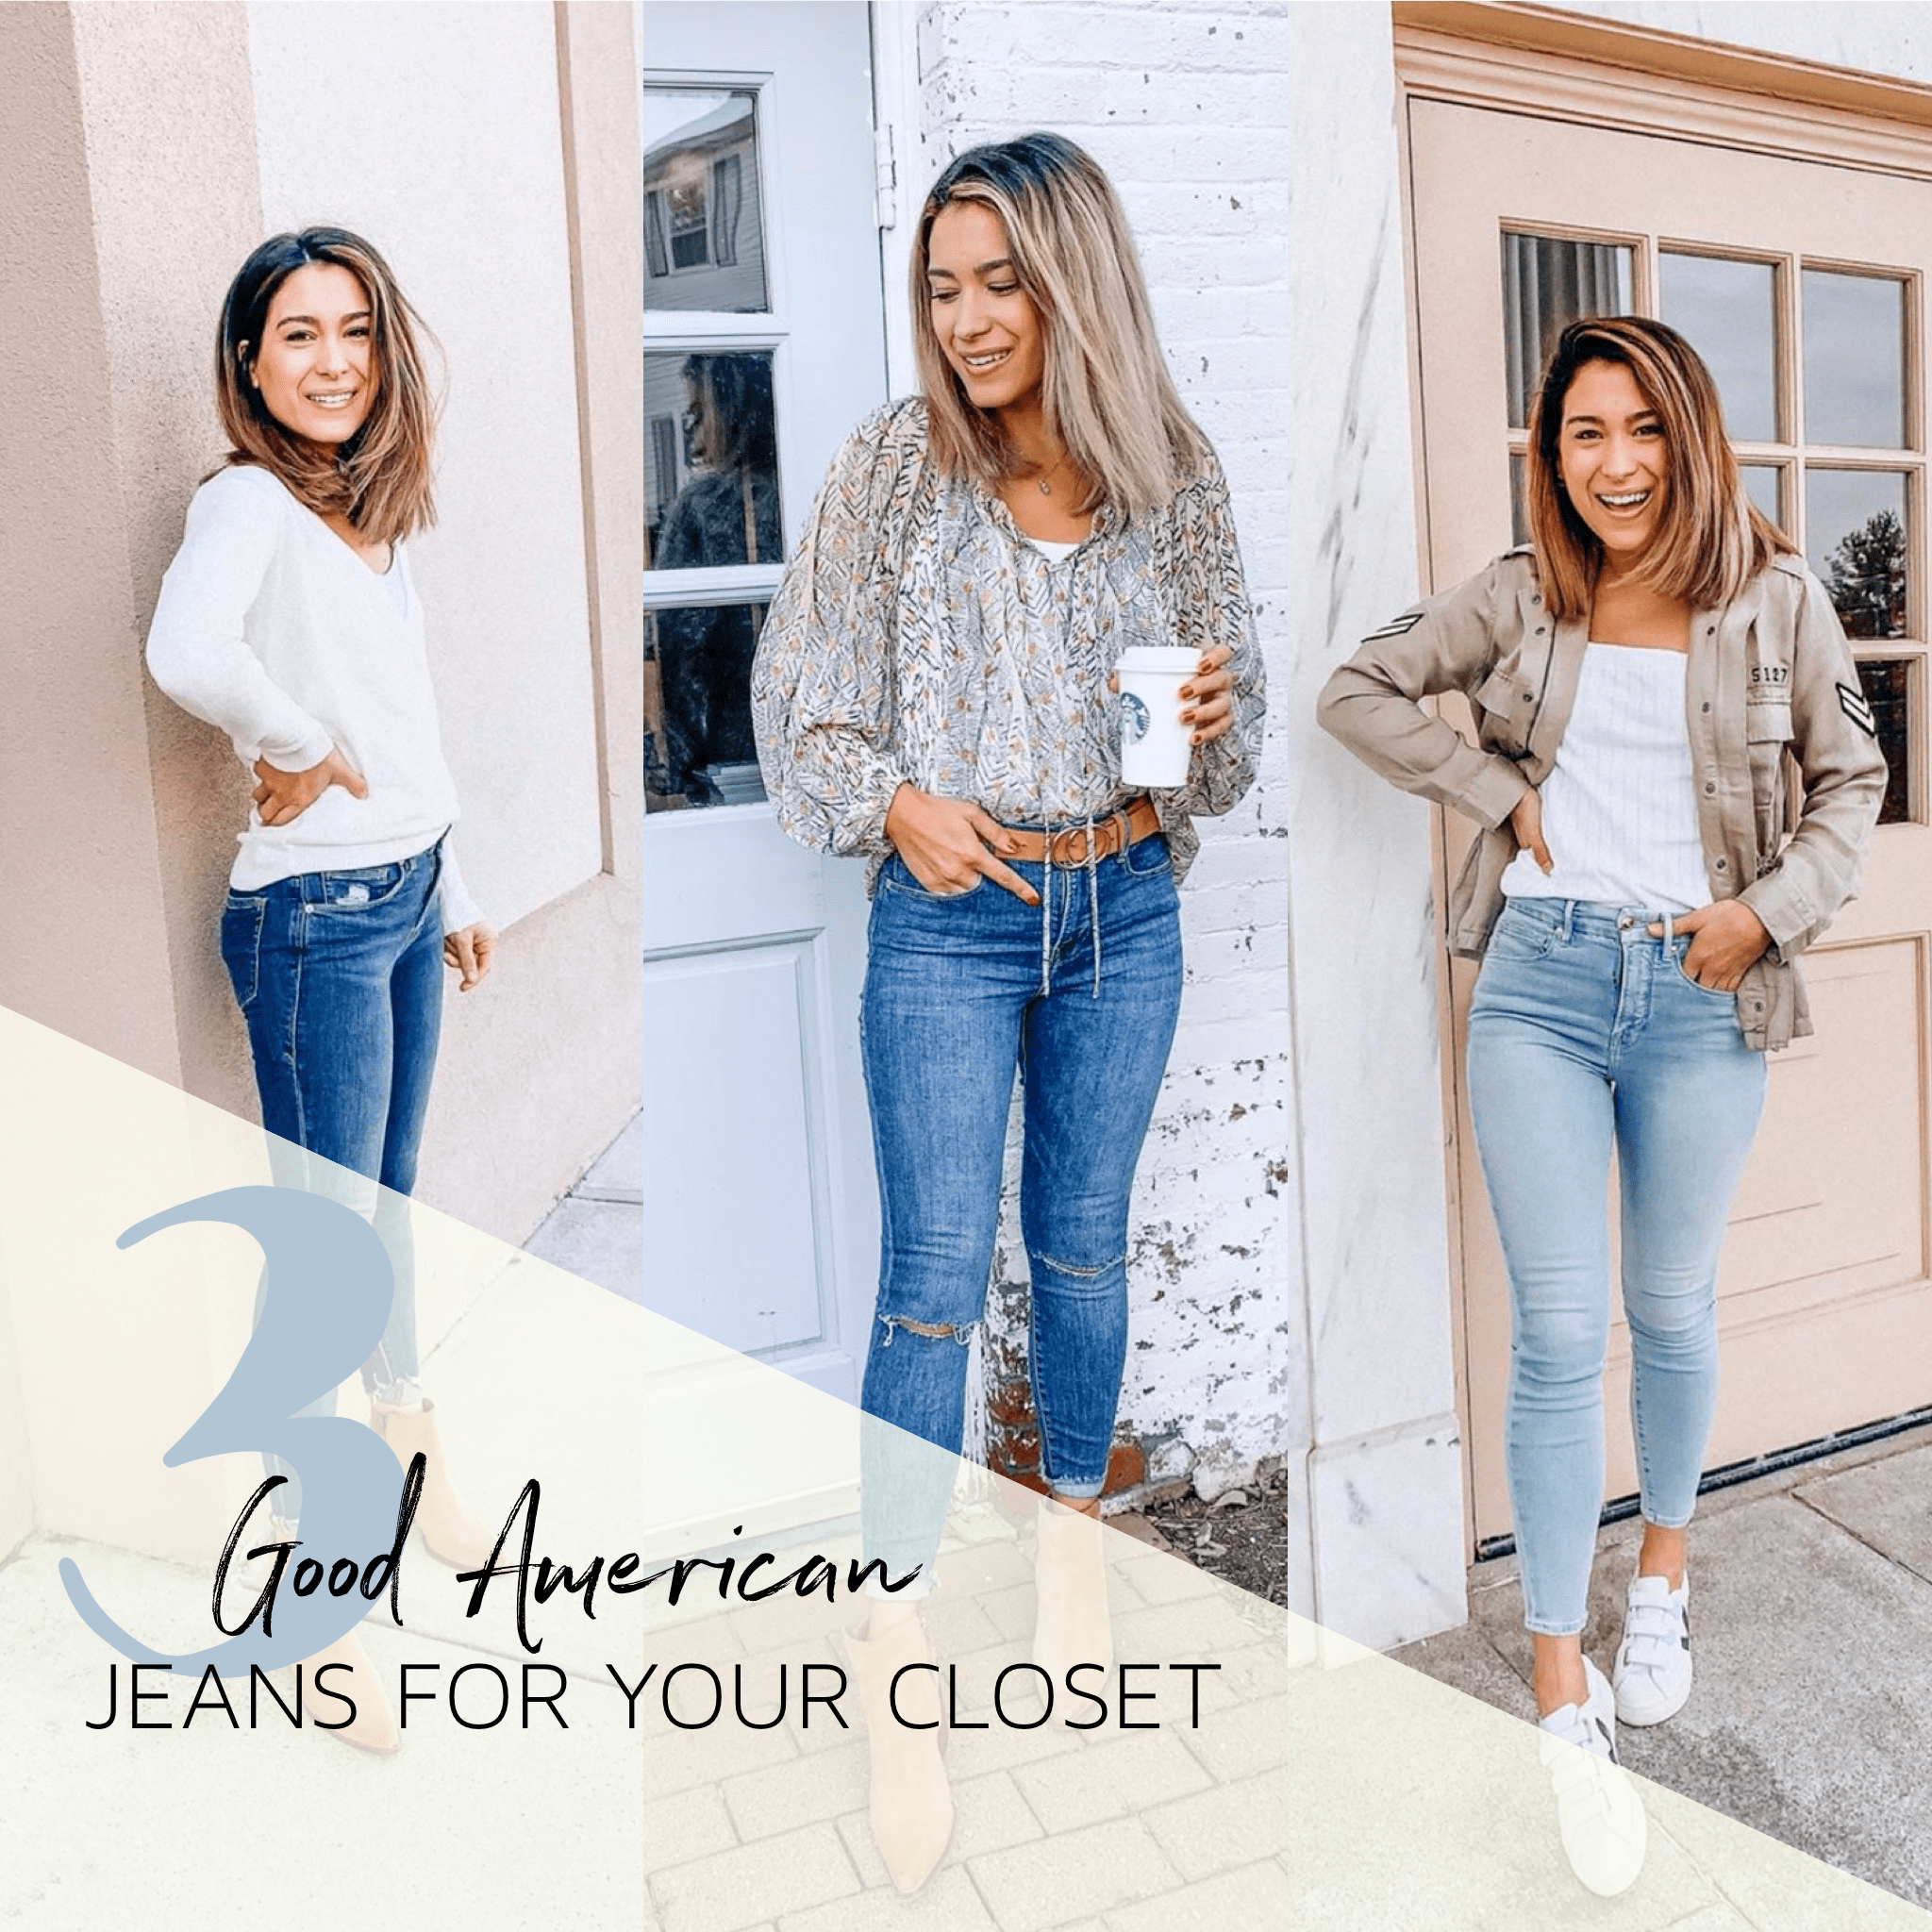 Top 3 Best Good American Jeans to Have in your Closet this Spring Trendy Outfits